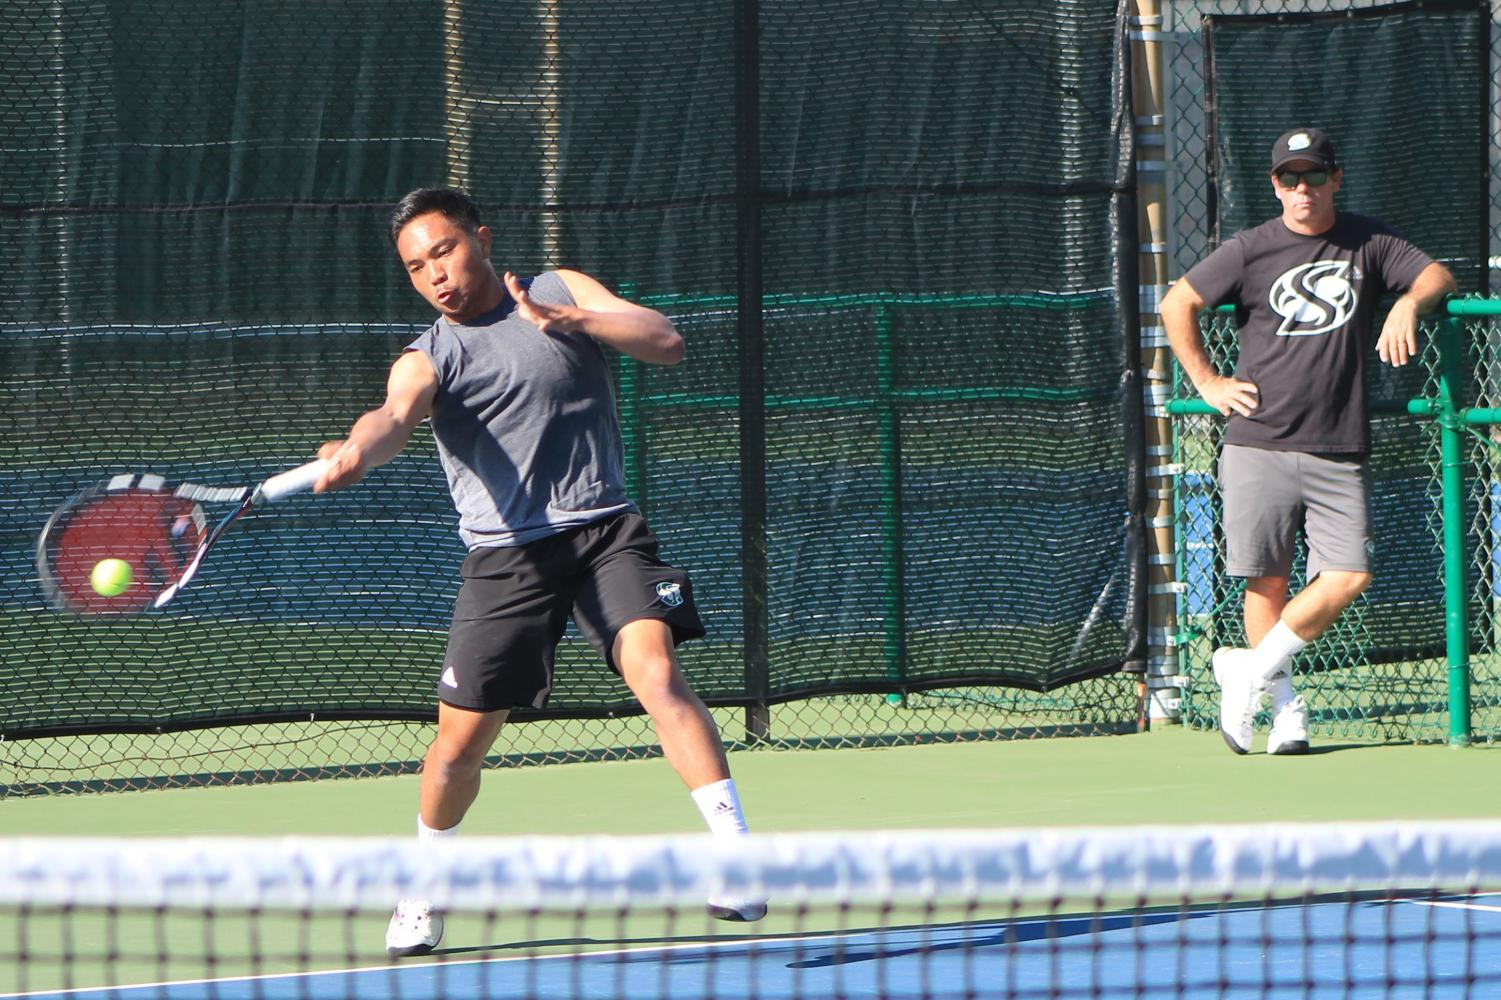 Sacramento State men's tennis coach Kevin Kurtz, right, oversees sophomore Hermont Legaspi, left, as he forehands the ball back to a teammate during practice at the Sacramento State Courts on Wed., March 7, 2018.